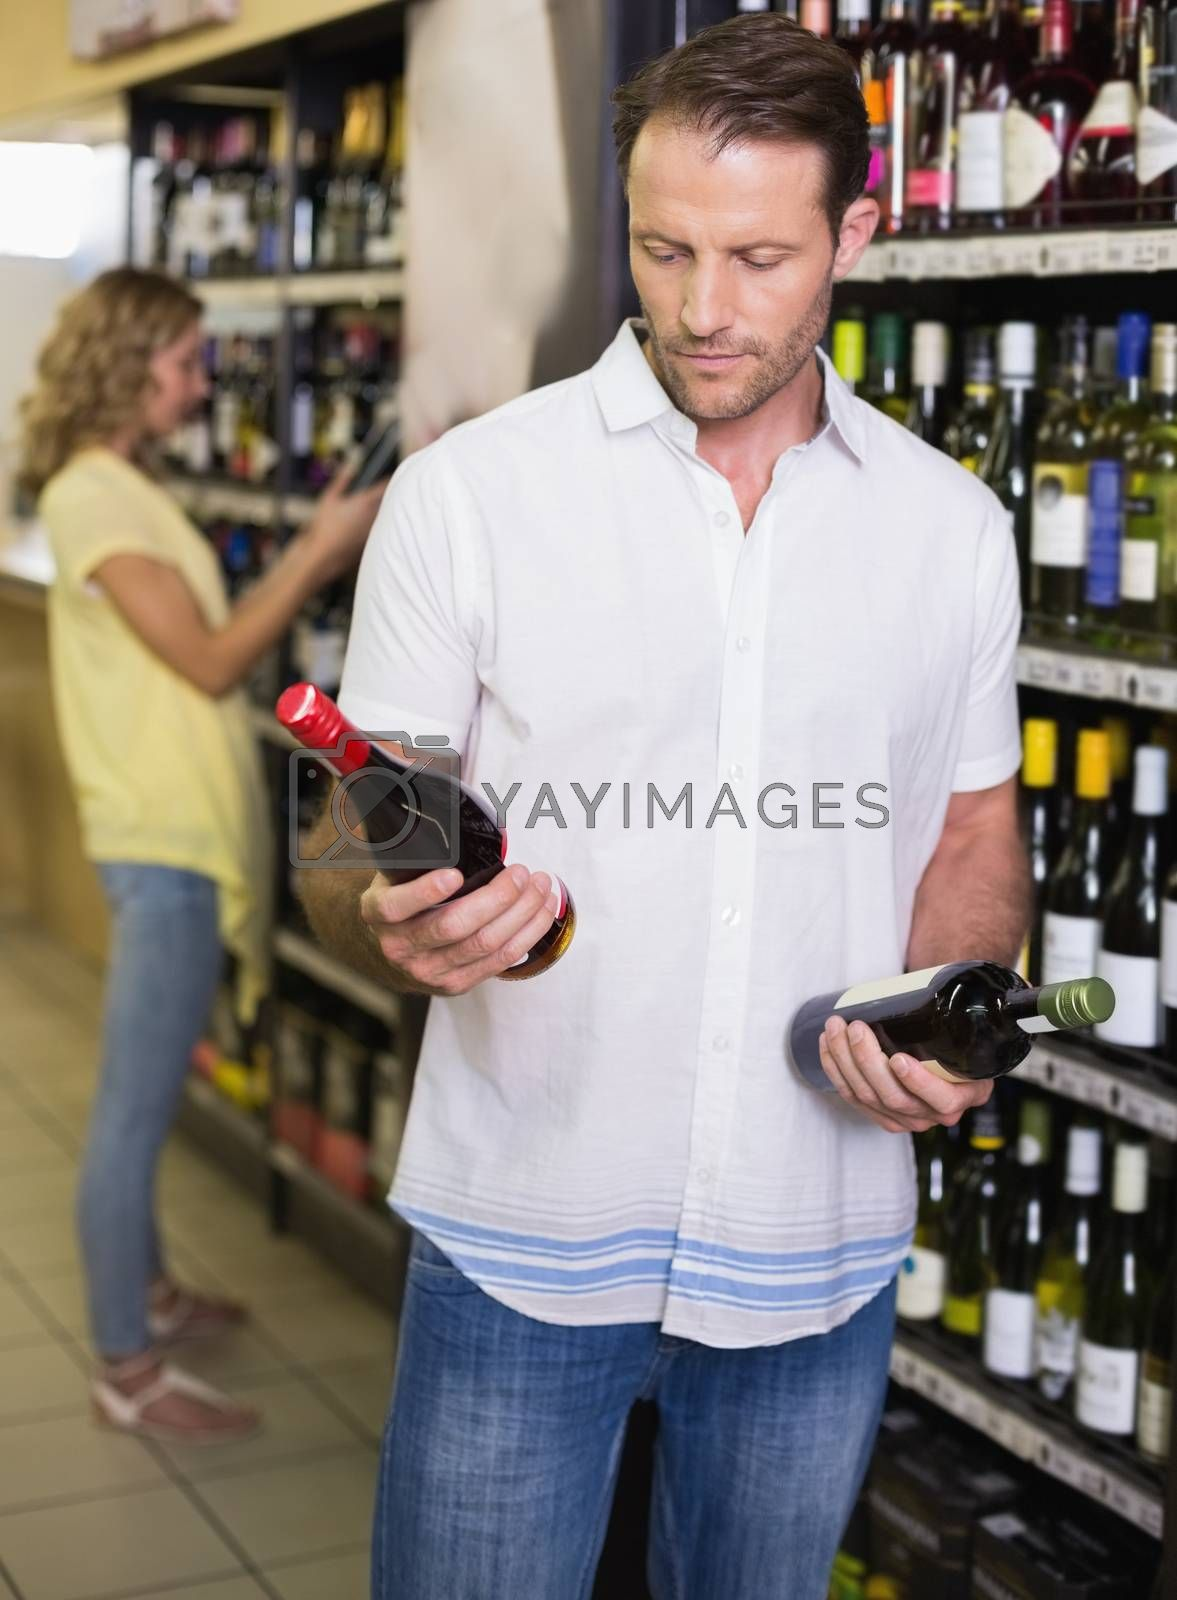 Royalty free image of A handsome showing a wine bottle  by Wavebreakmedia